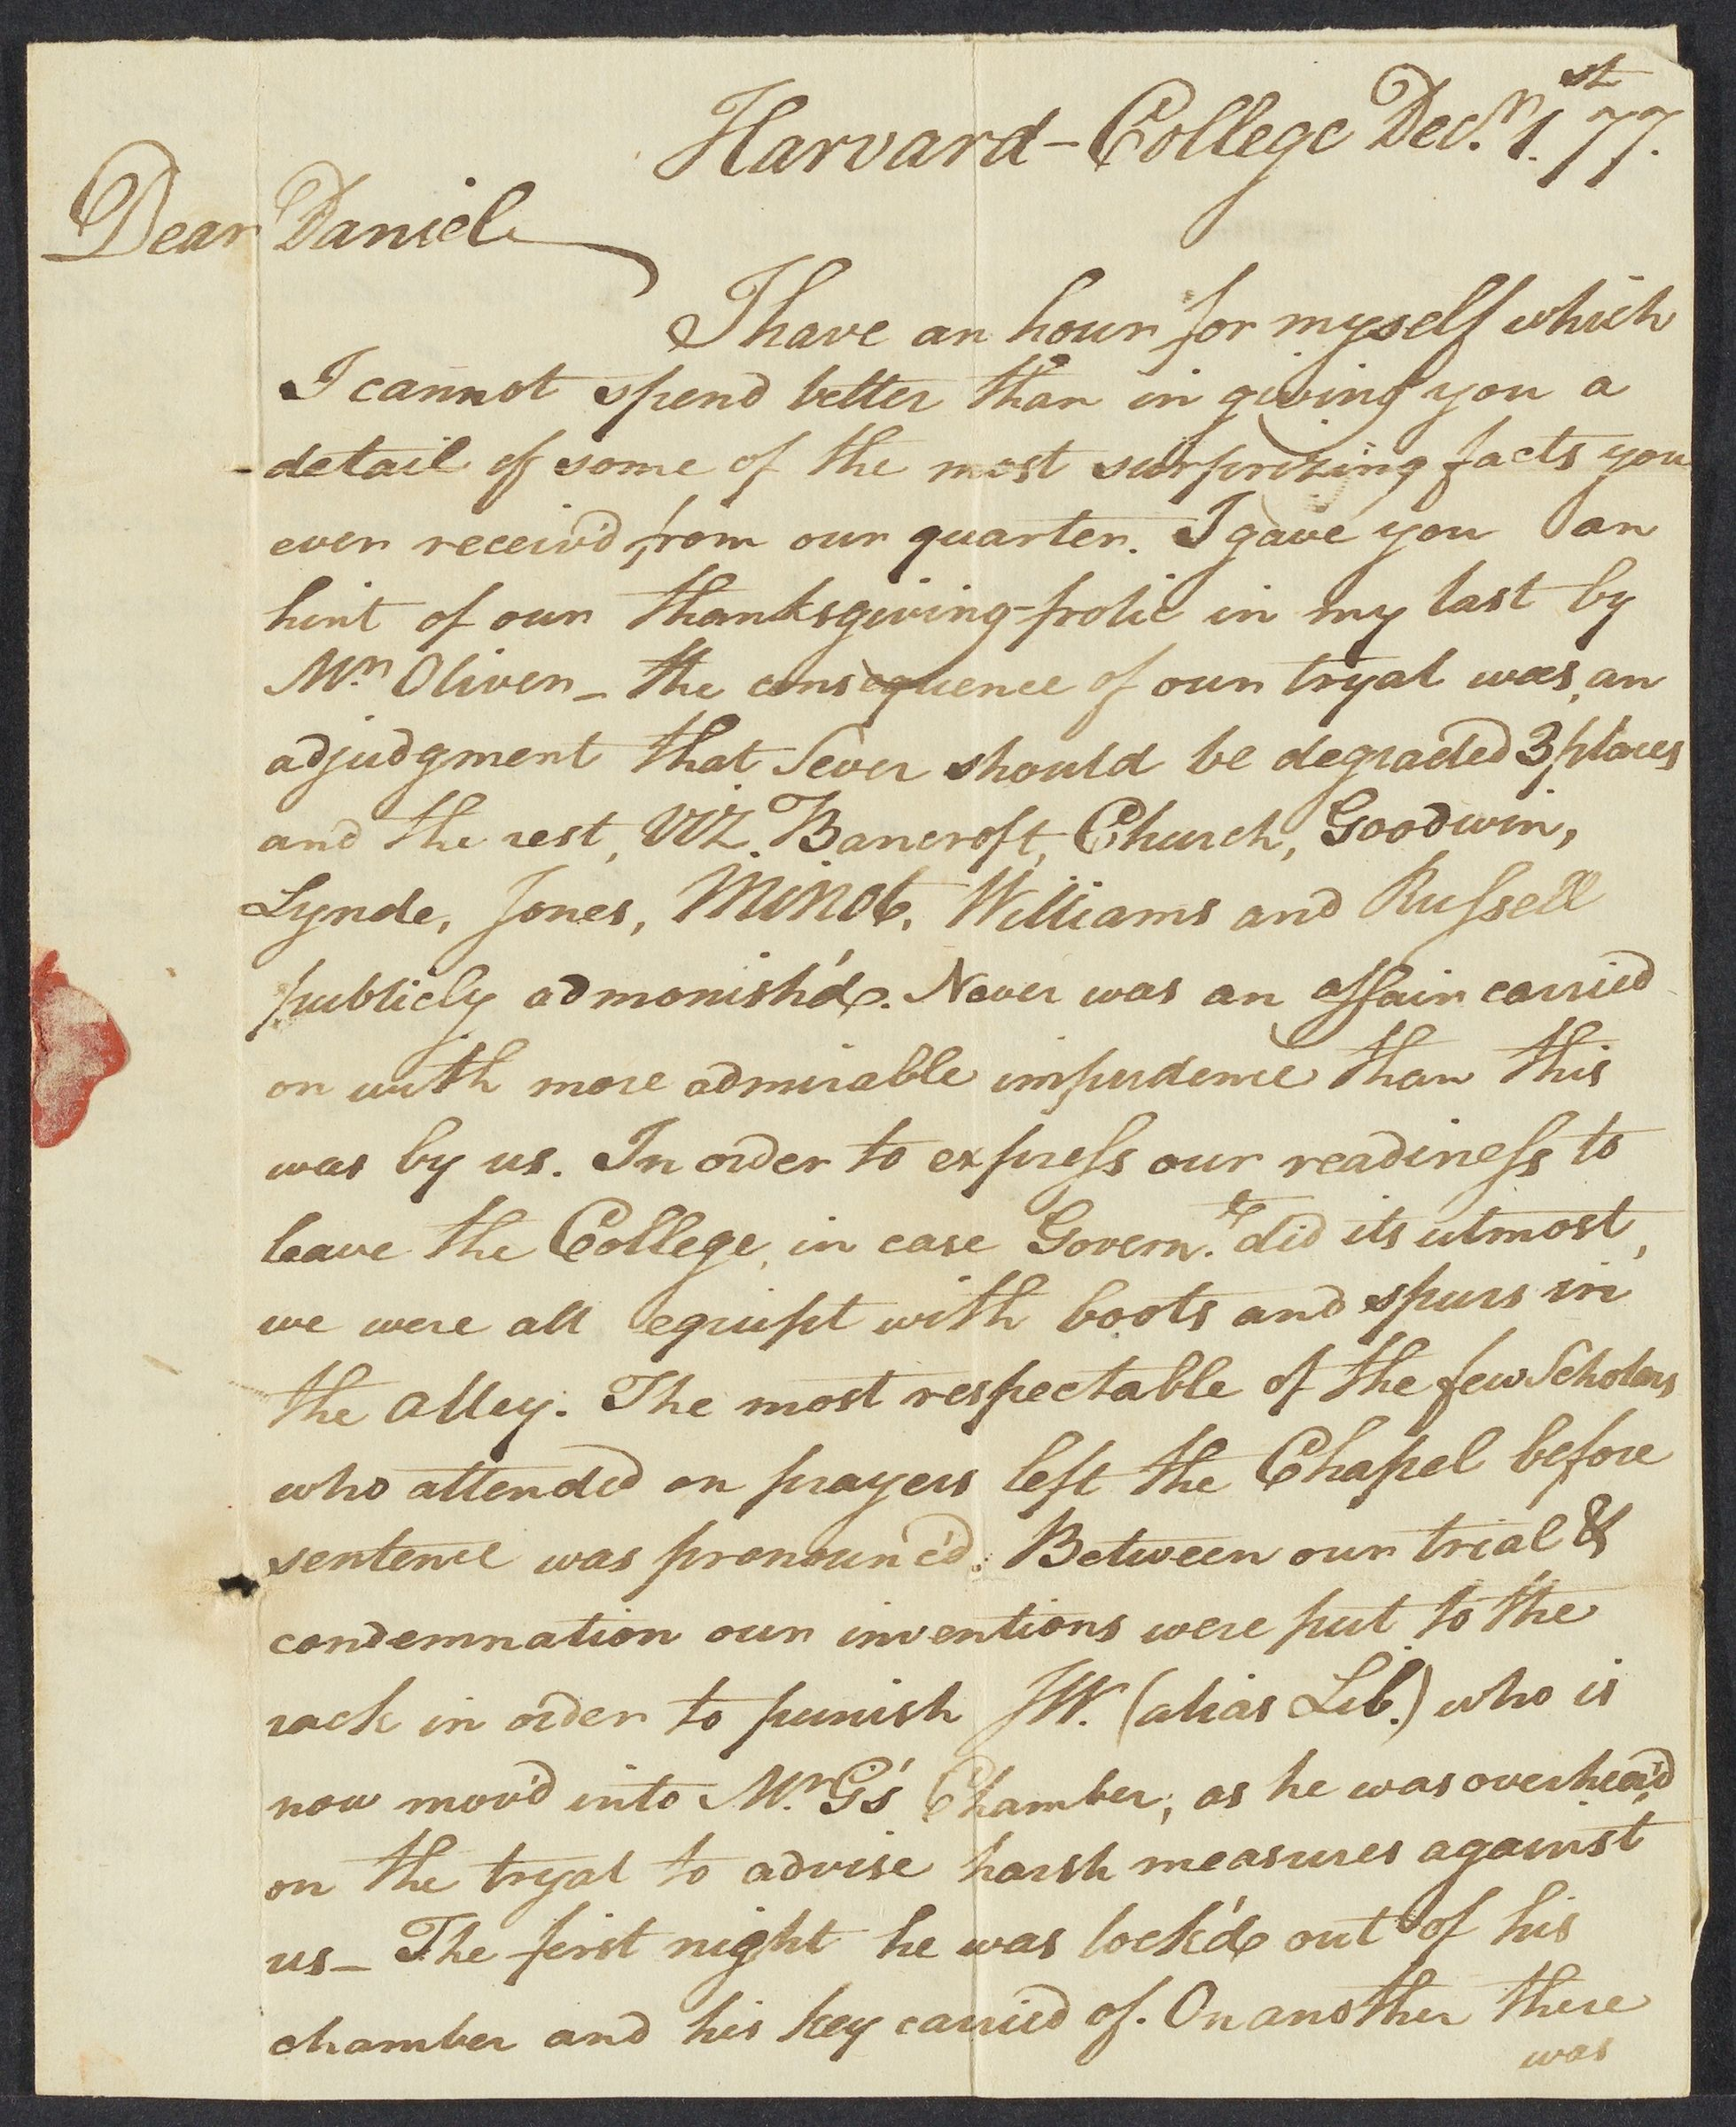 Letter from George Richards Minot to Daniel Kilham, 1777 December 1